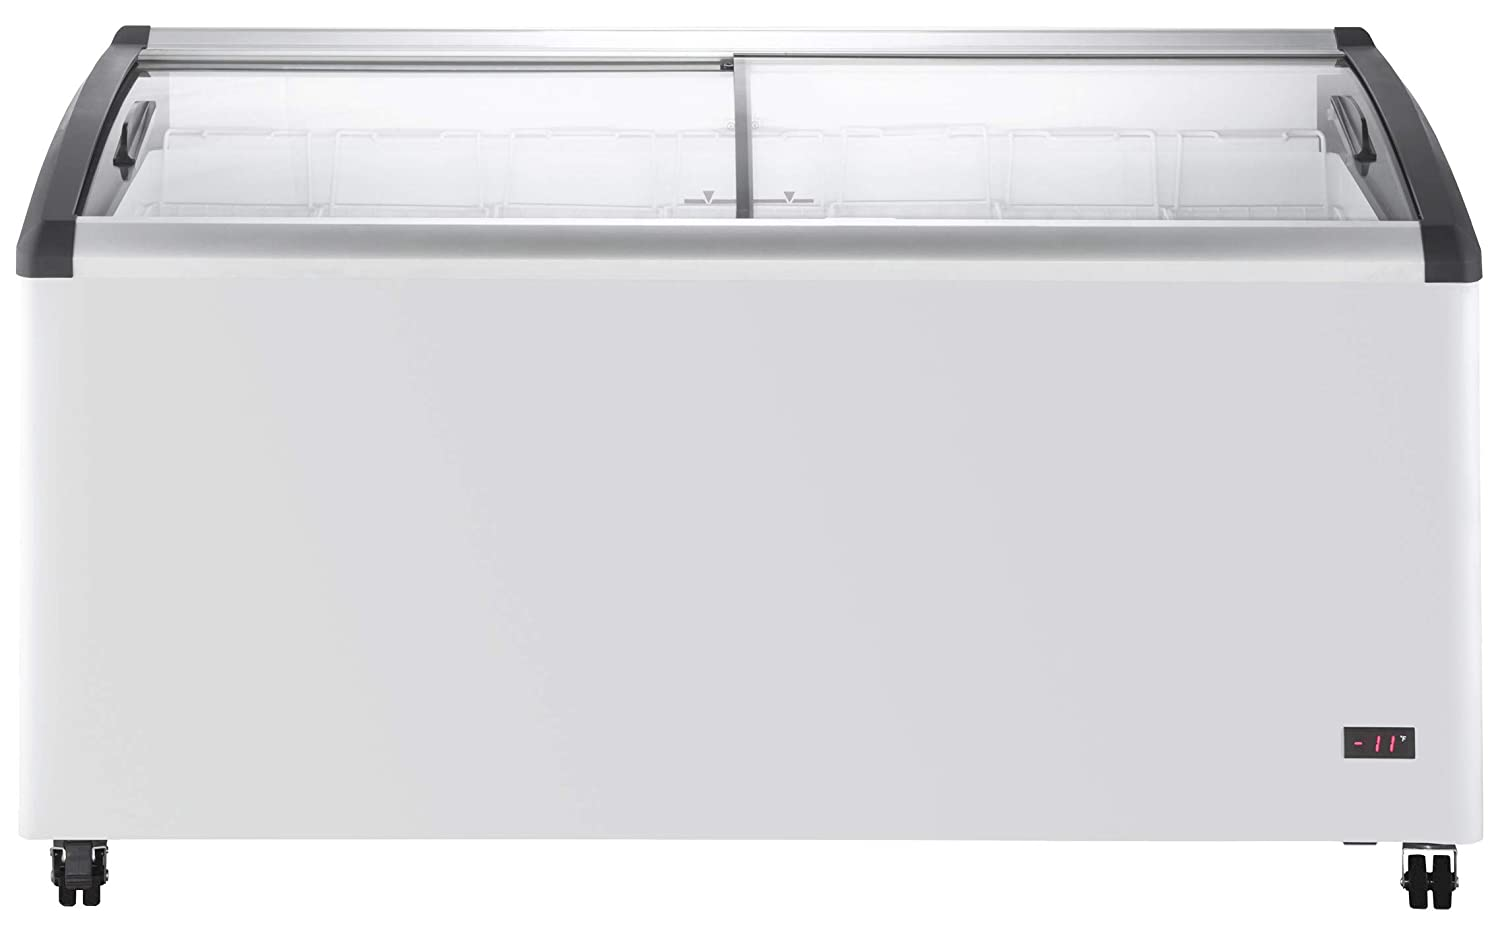 Chef's Exclusive Commercial Mobile Ice Cream Display Chest Freezer Curved Sliding Glass Lids Frost Free Sub Zero with 7 Wire Baskets, 63.4 Inch Wide, White 61DCircDv2BL._SL1500_